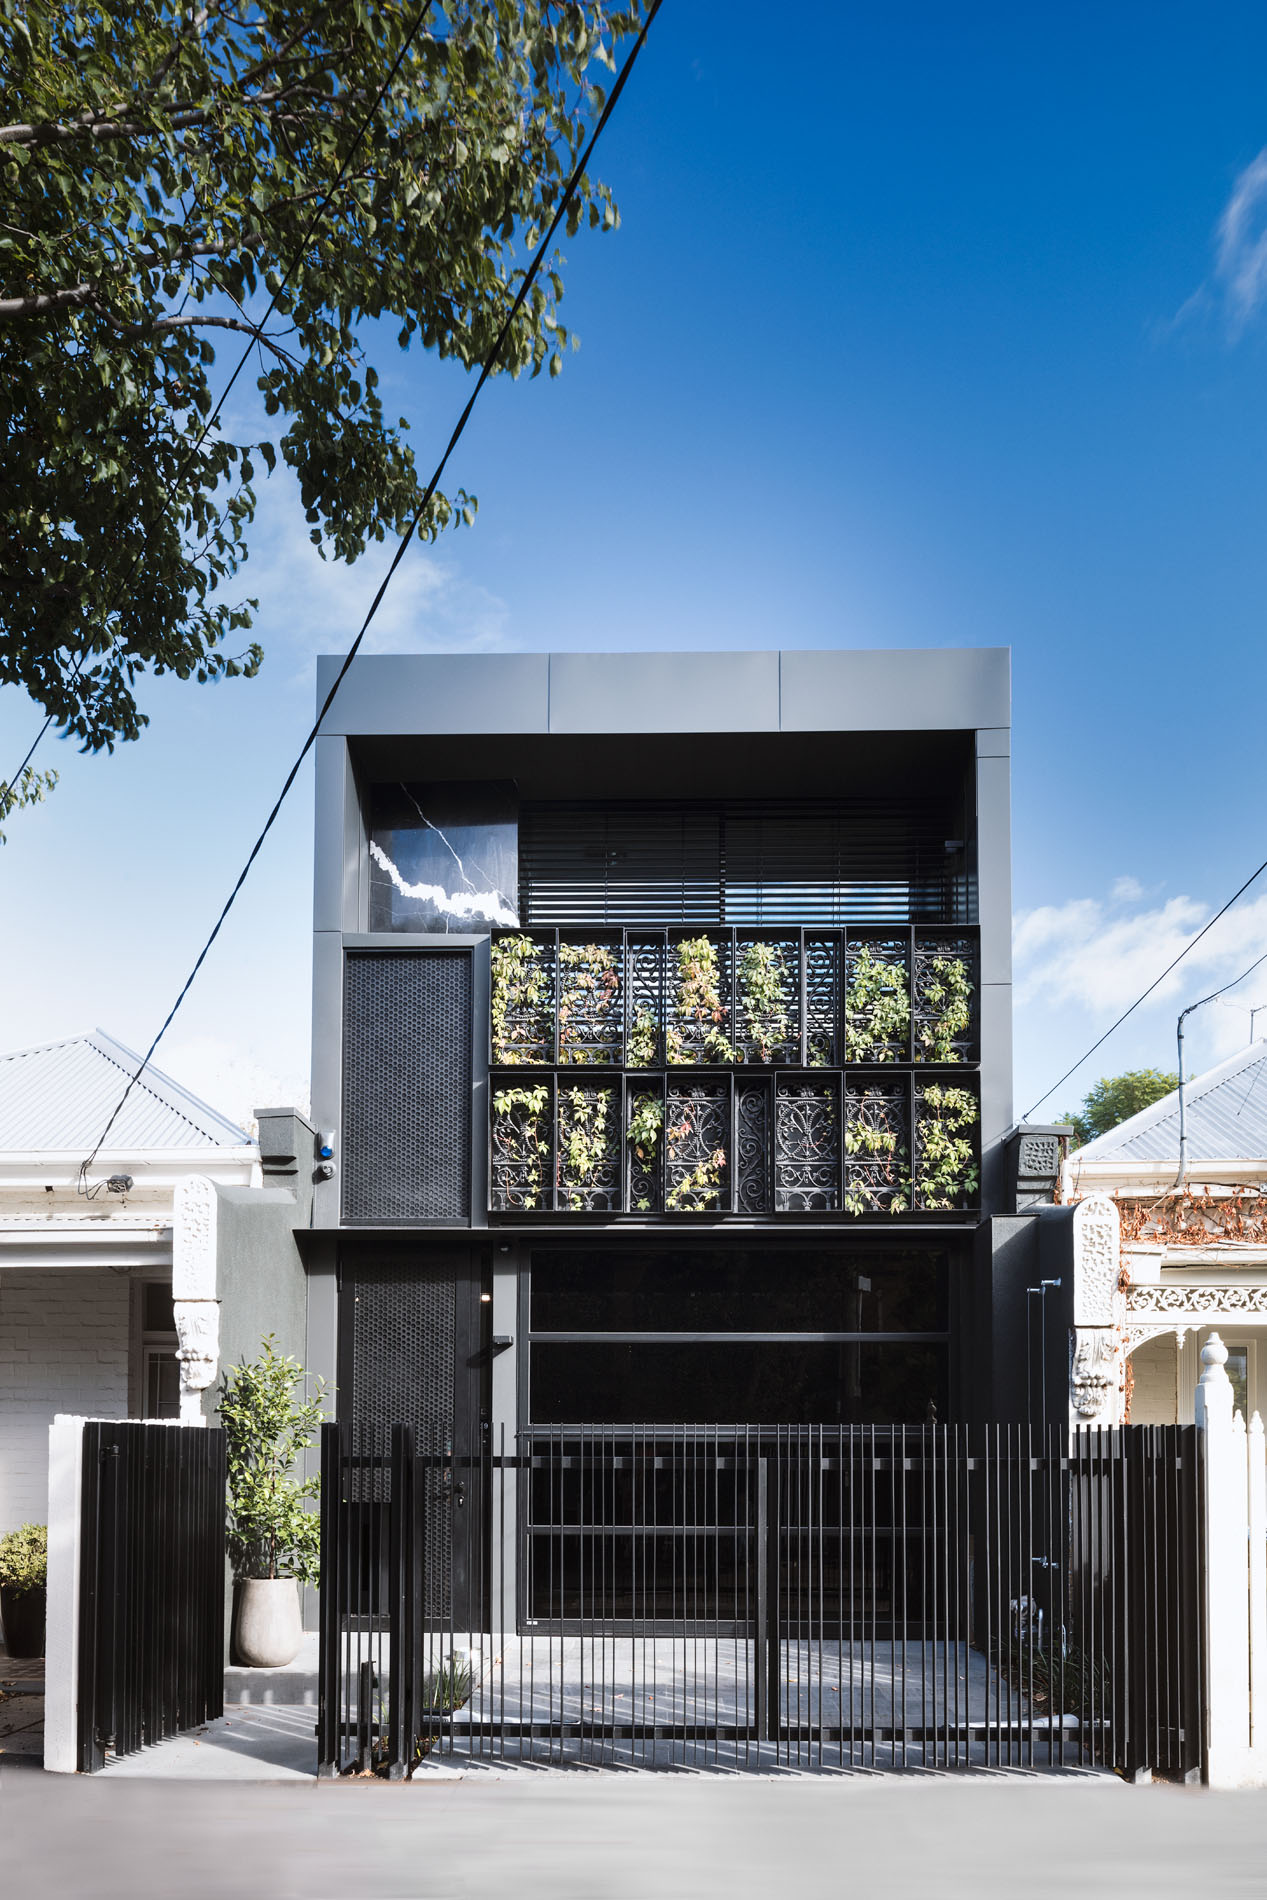 The Local Project Presents, In Collaboration With Rogerseller, An Exploration Of The York Street House By Atelier Wagner Architects